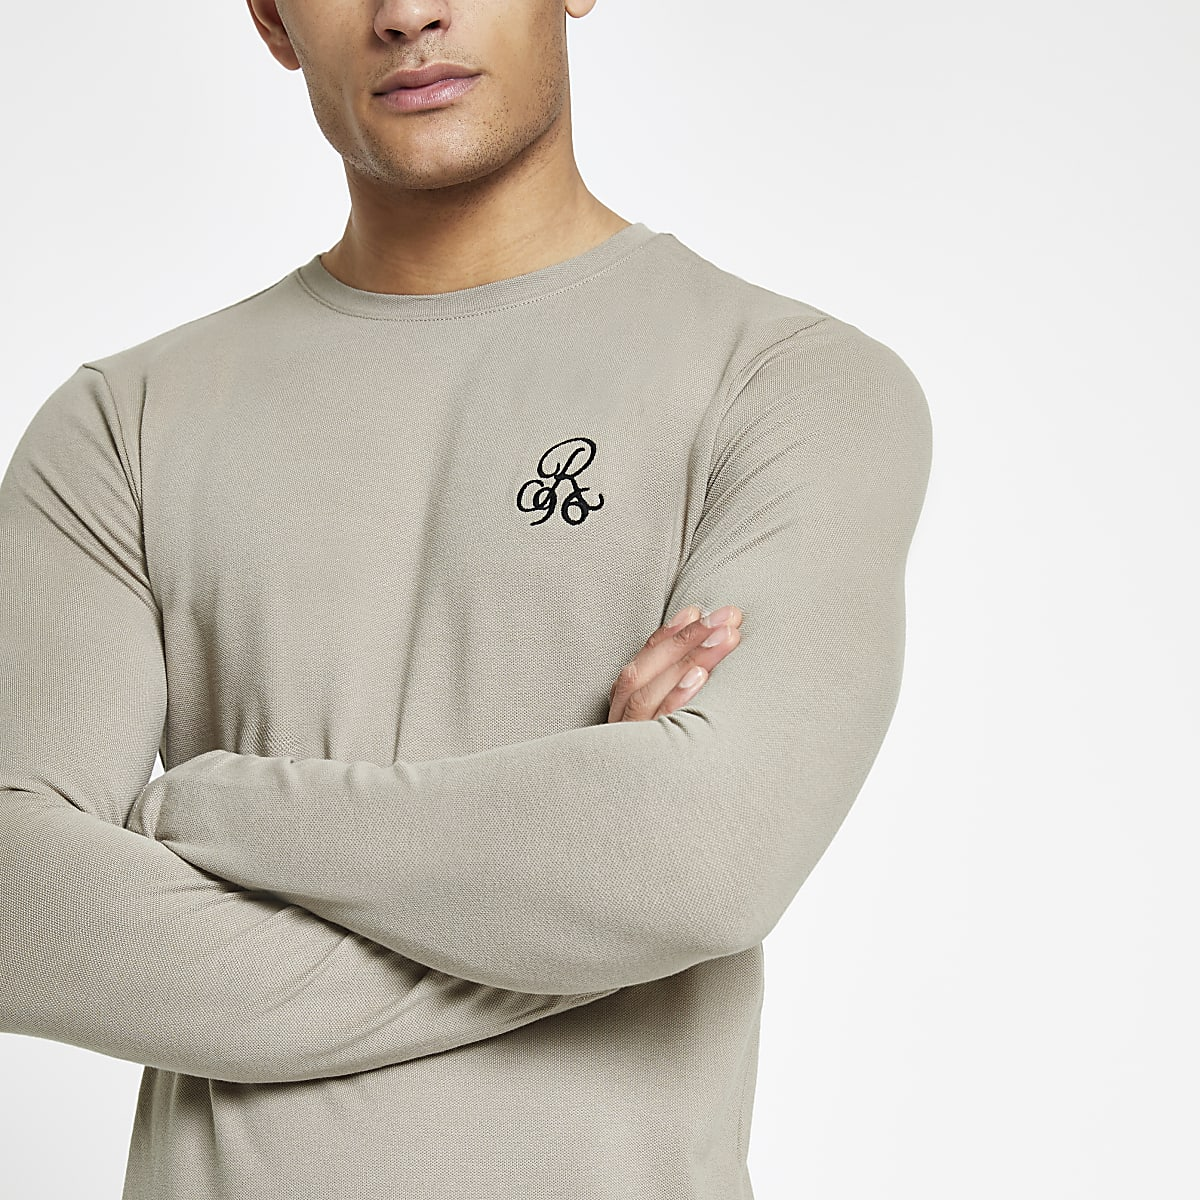 R96 stone muscle fit long sleeve T-shirt